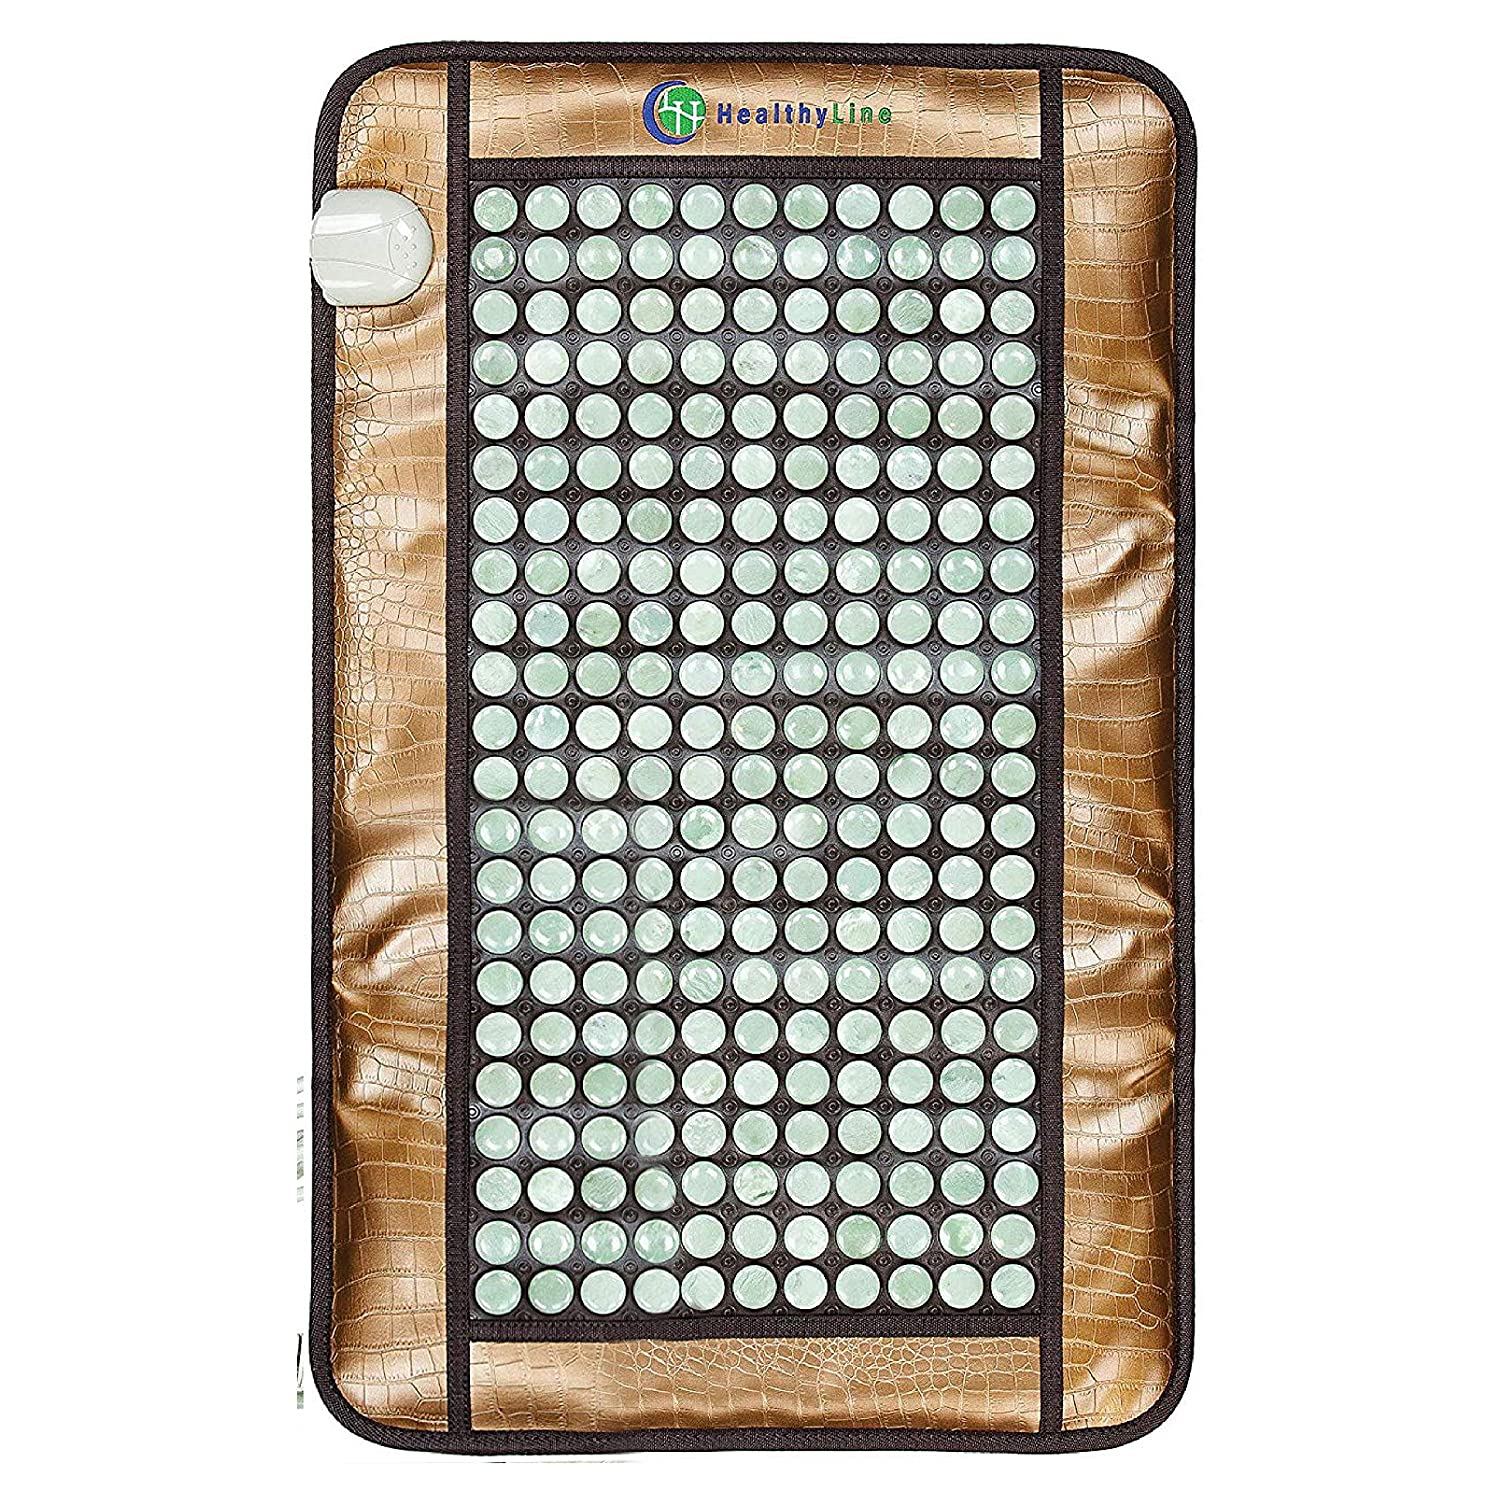 "Healthyline Far Infrared Heating Pad - Jade Hot Stone Therapy - Reduce Tight Muscle Tension - Improve Blood Circulation in Your Back, Shoulders, Neck, and Feet (32"" x 20"")"